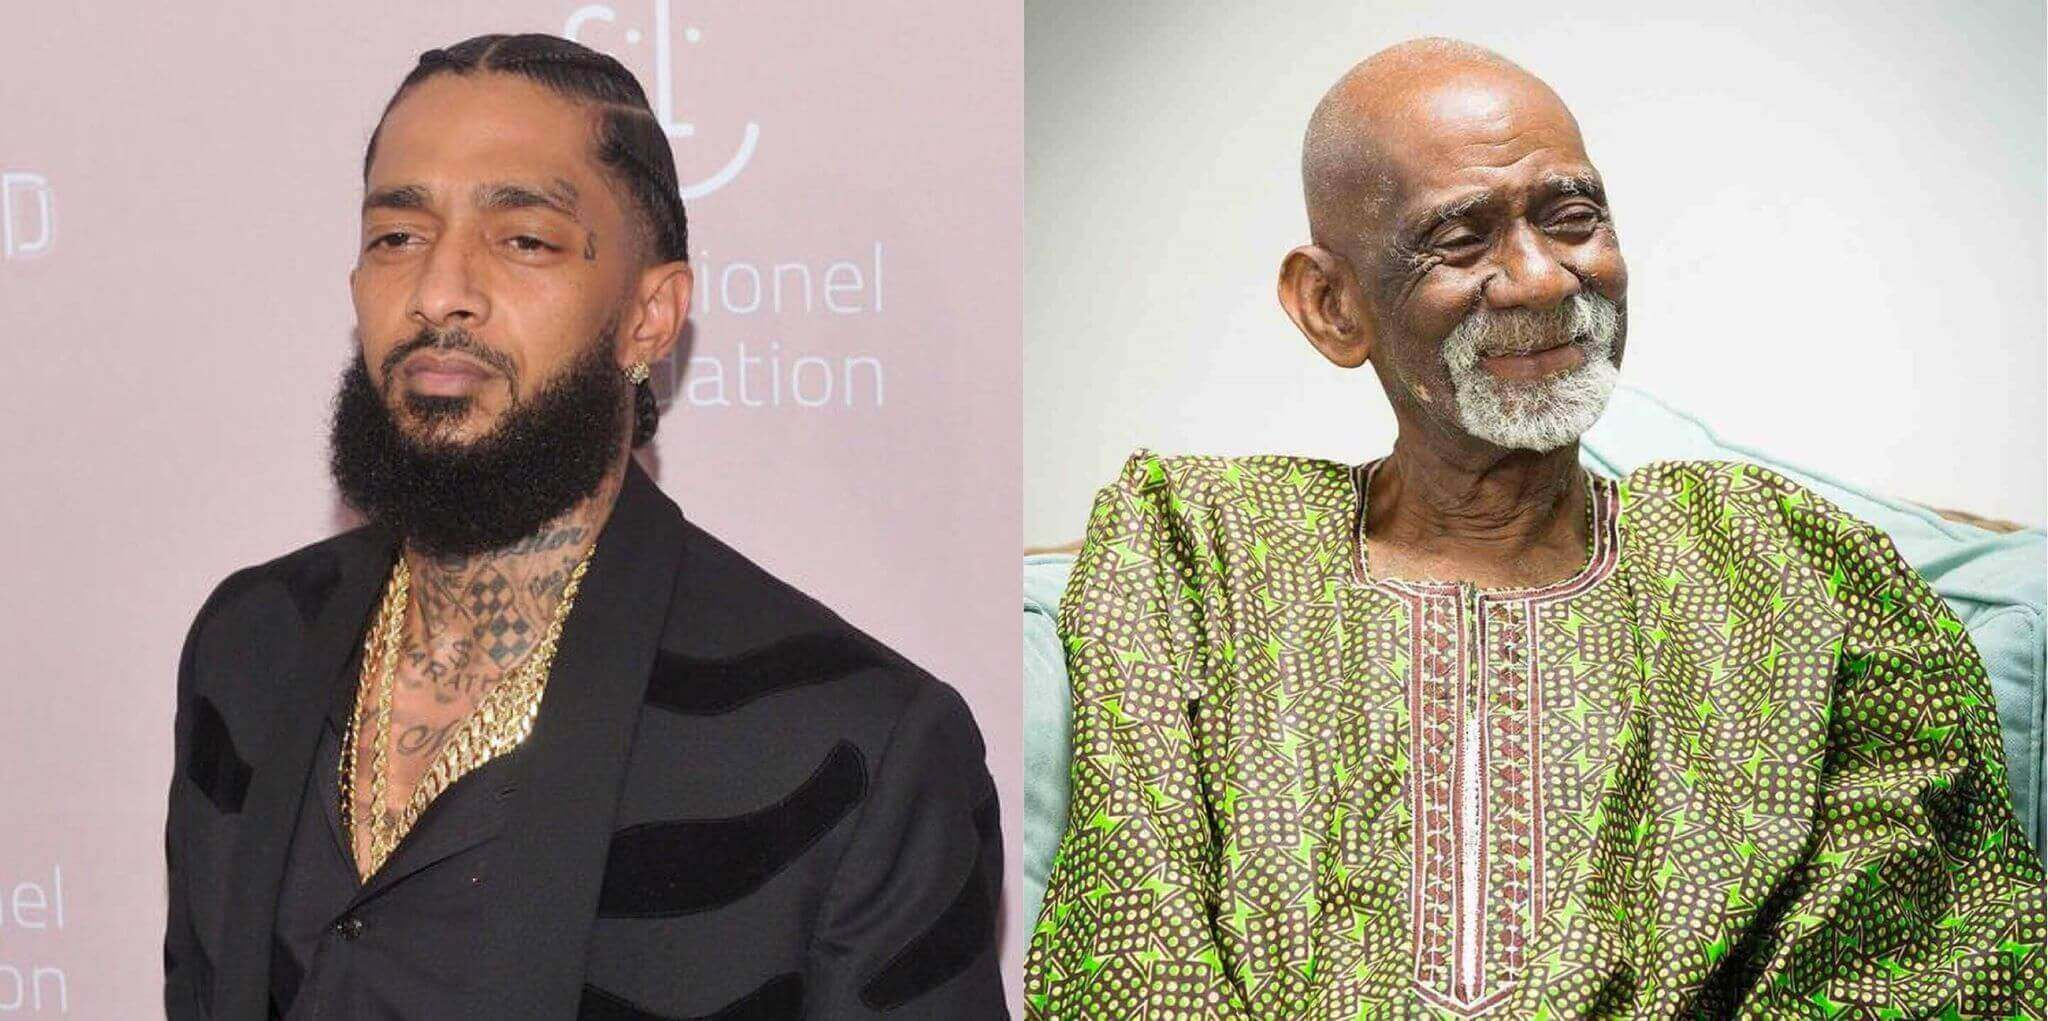 Dr  Sebi Trends on Twitter as Conspiracy Theories Rise Amid